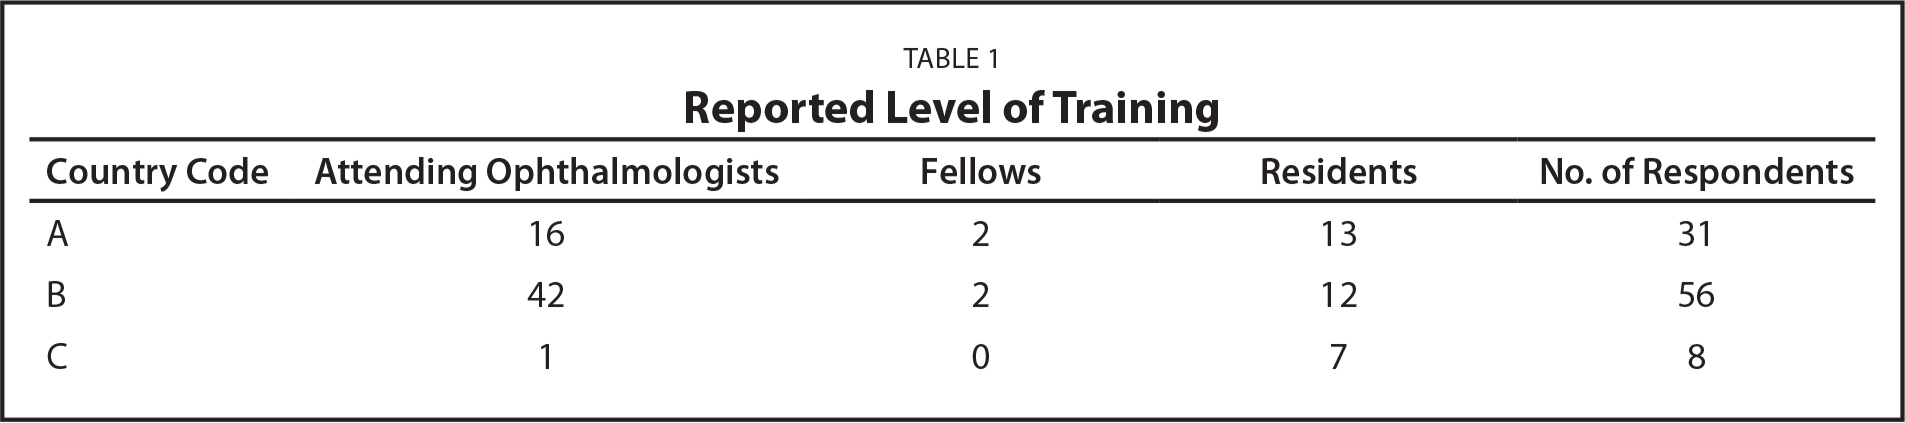 Reported Level of Training